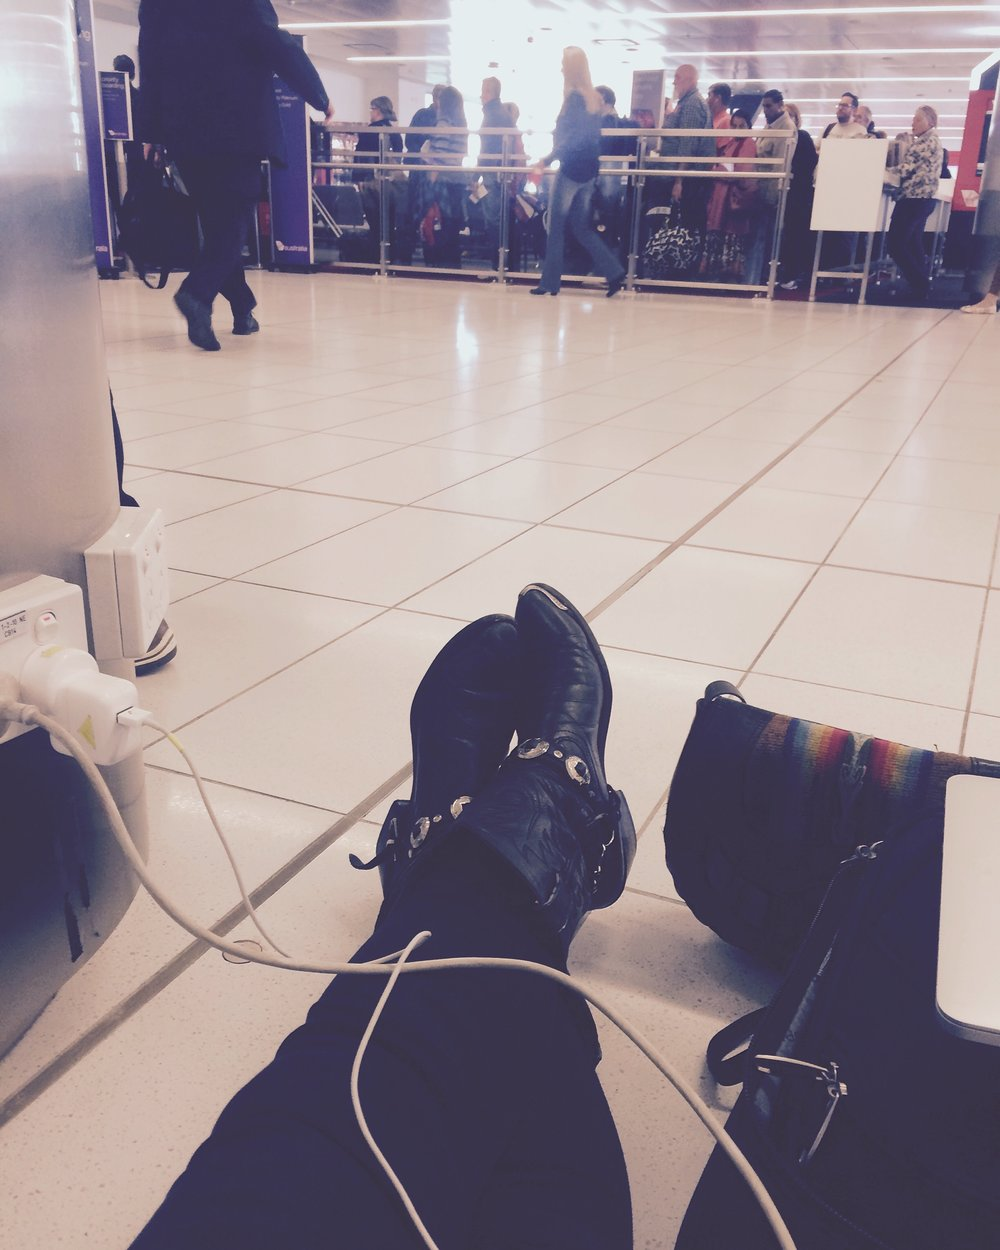 My airport style. Sit & charge till the last call!